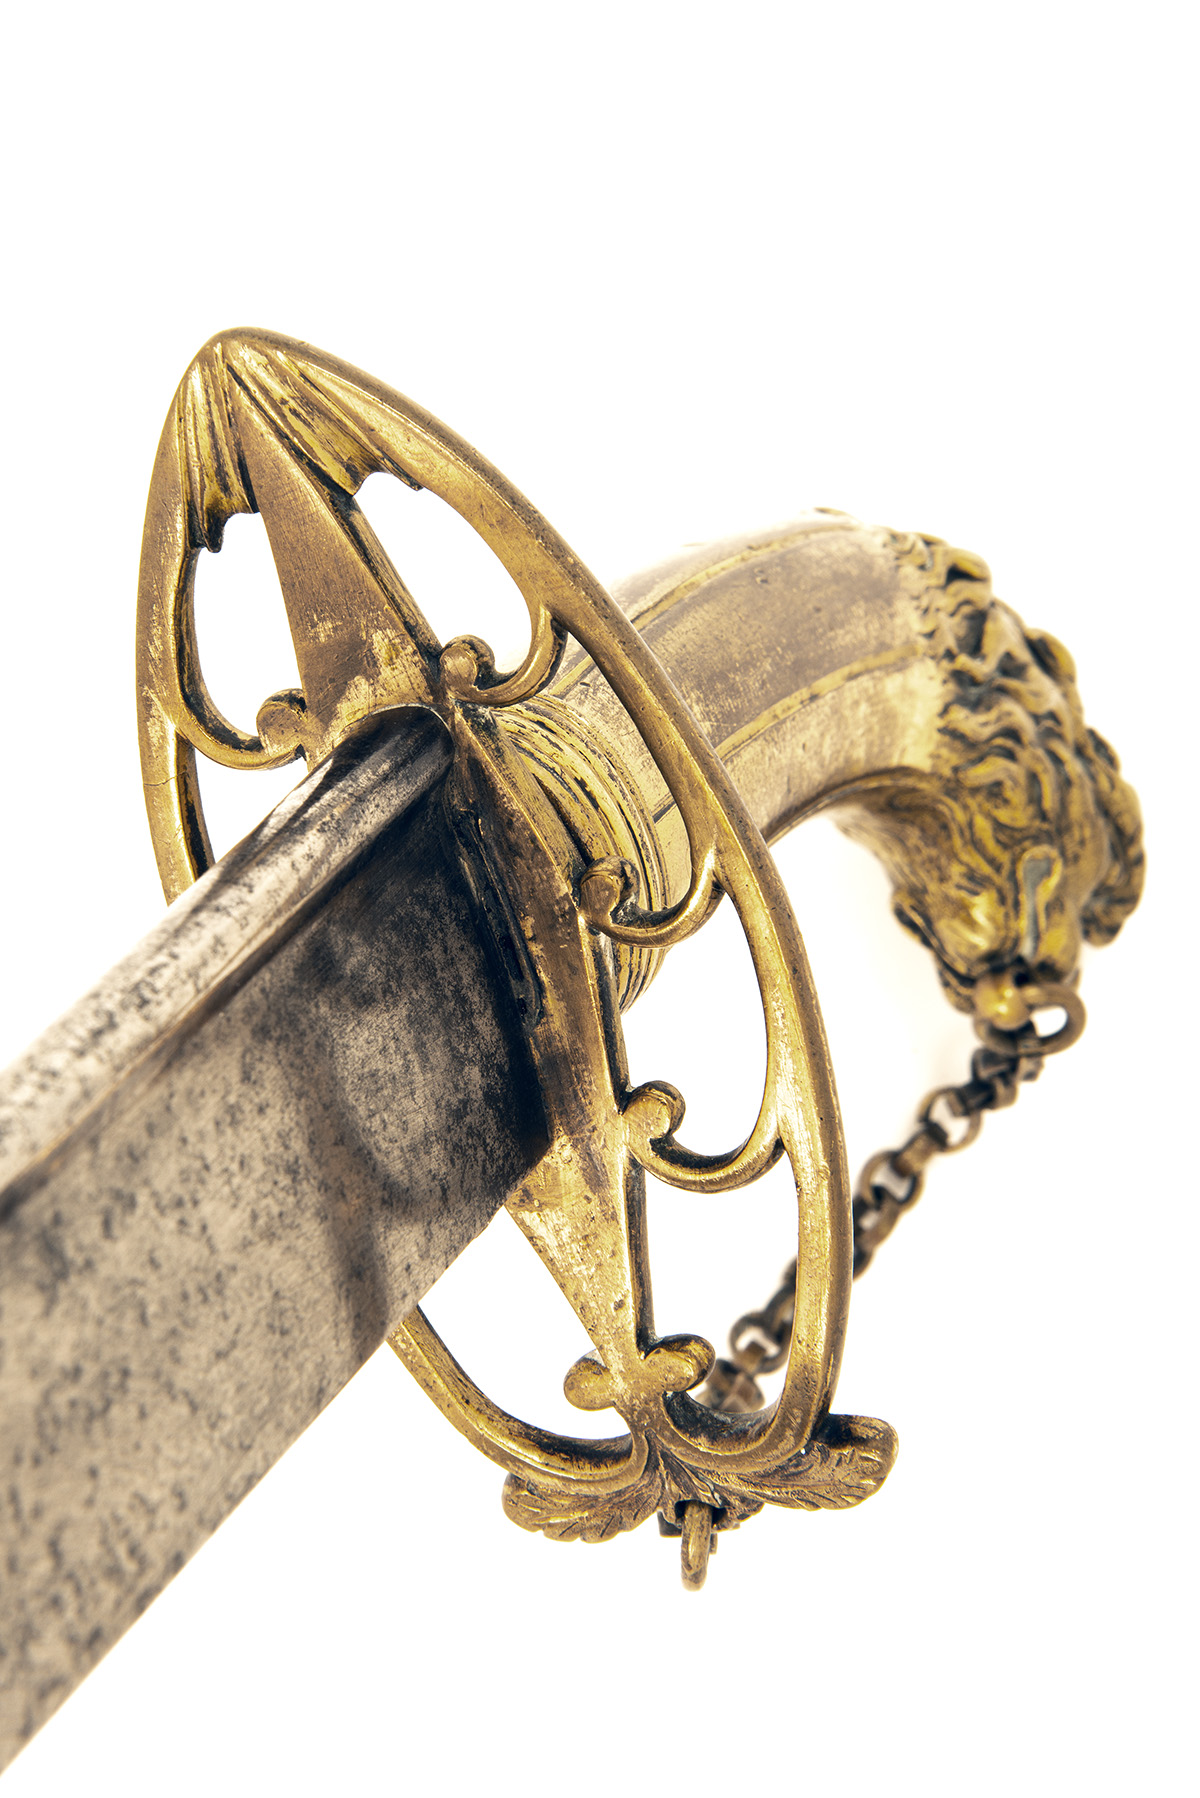 Lot 205 - A BRITISH FLANK OFFICER'S SABRE WITH PIPE-BACKED BLADE circa 1785, with curved 29 1/2in. quill-